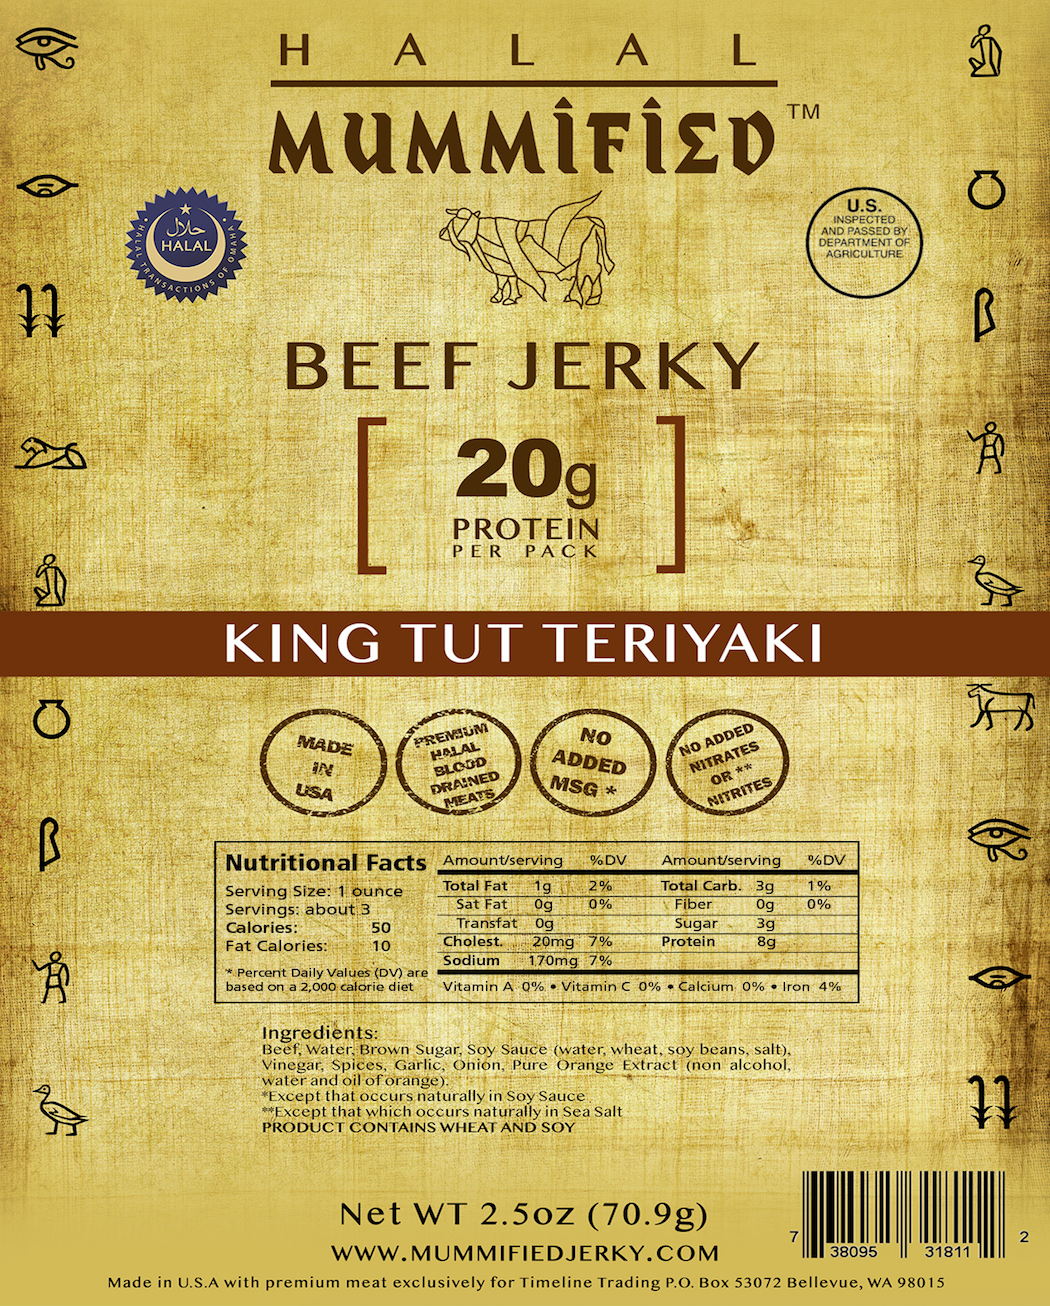 King Tut Teriyaki Beef Jerky 2.5oz